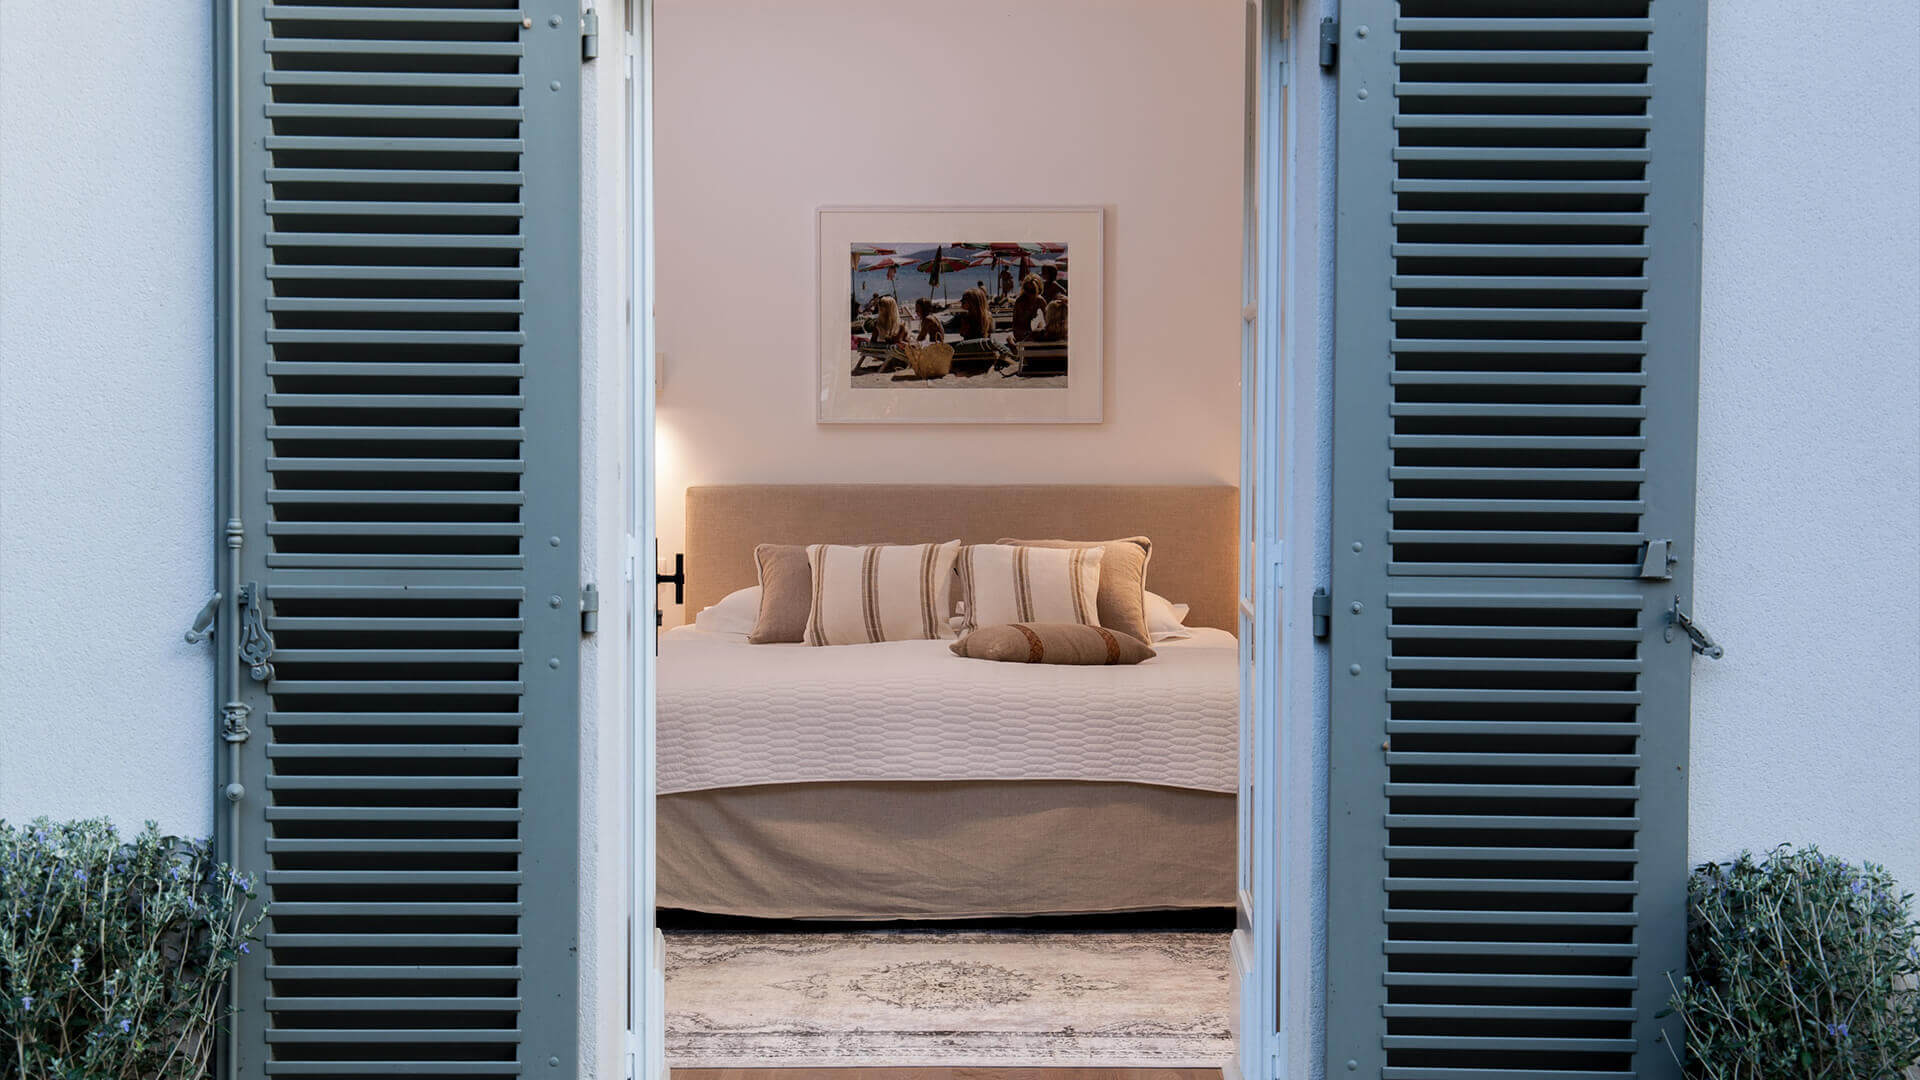 Bedroom with window shutters